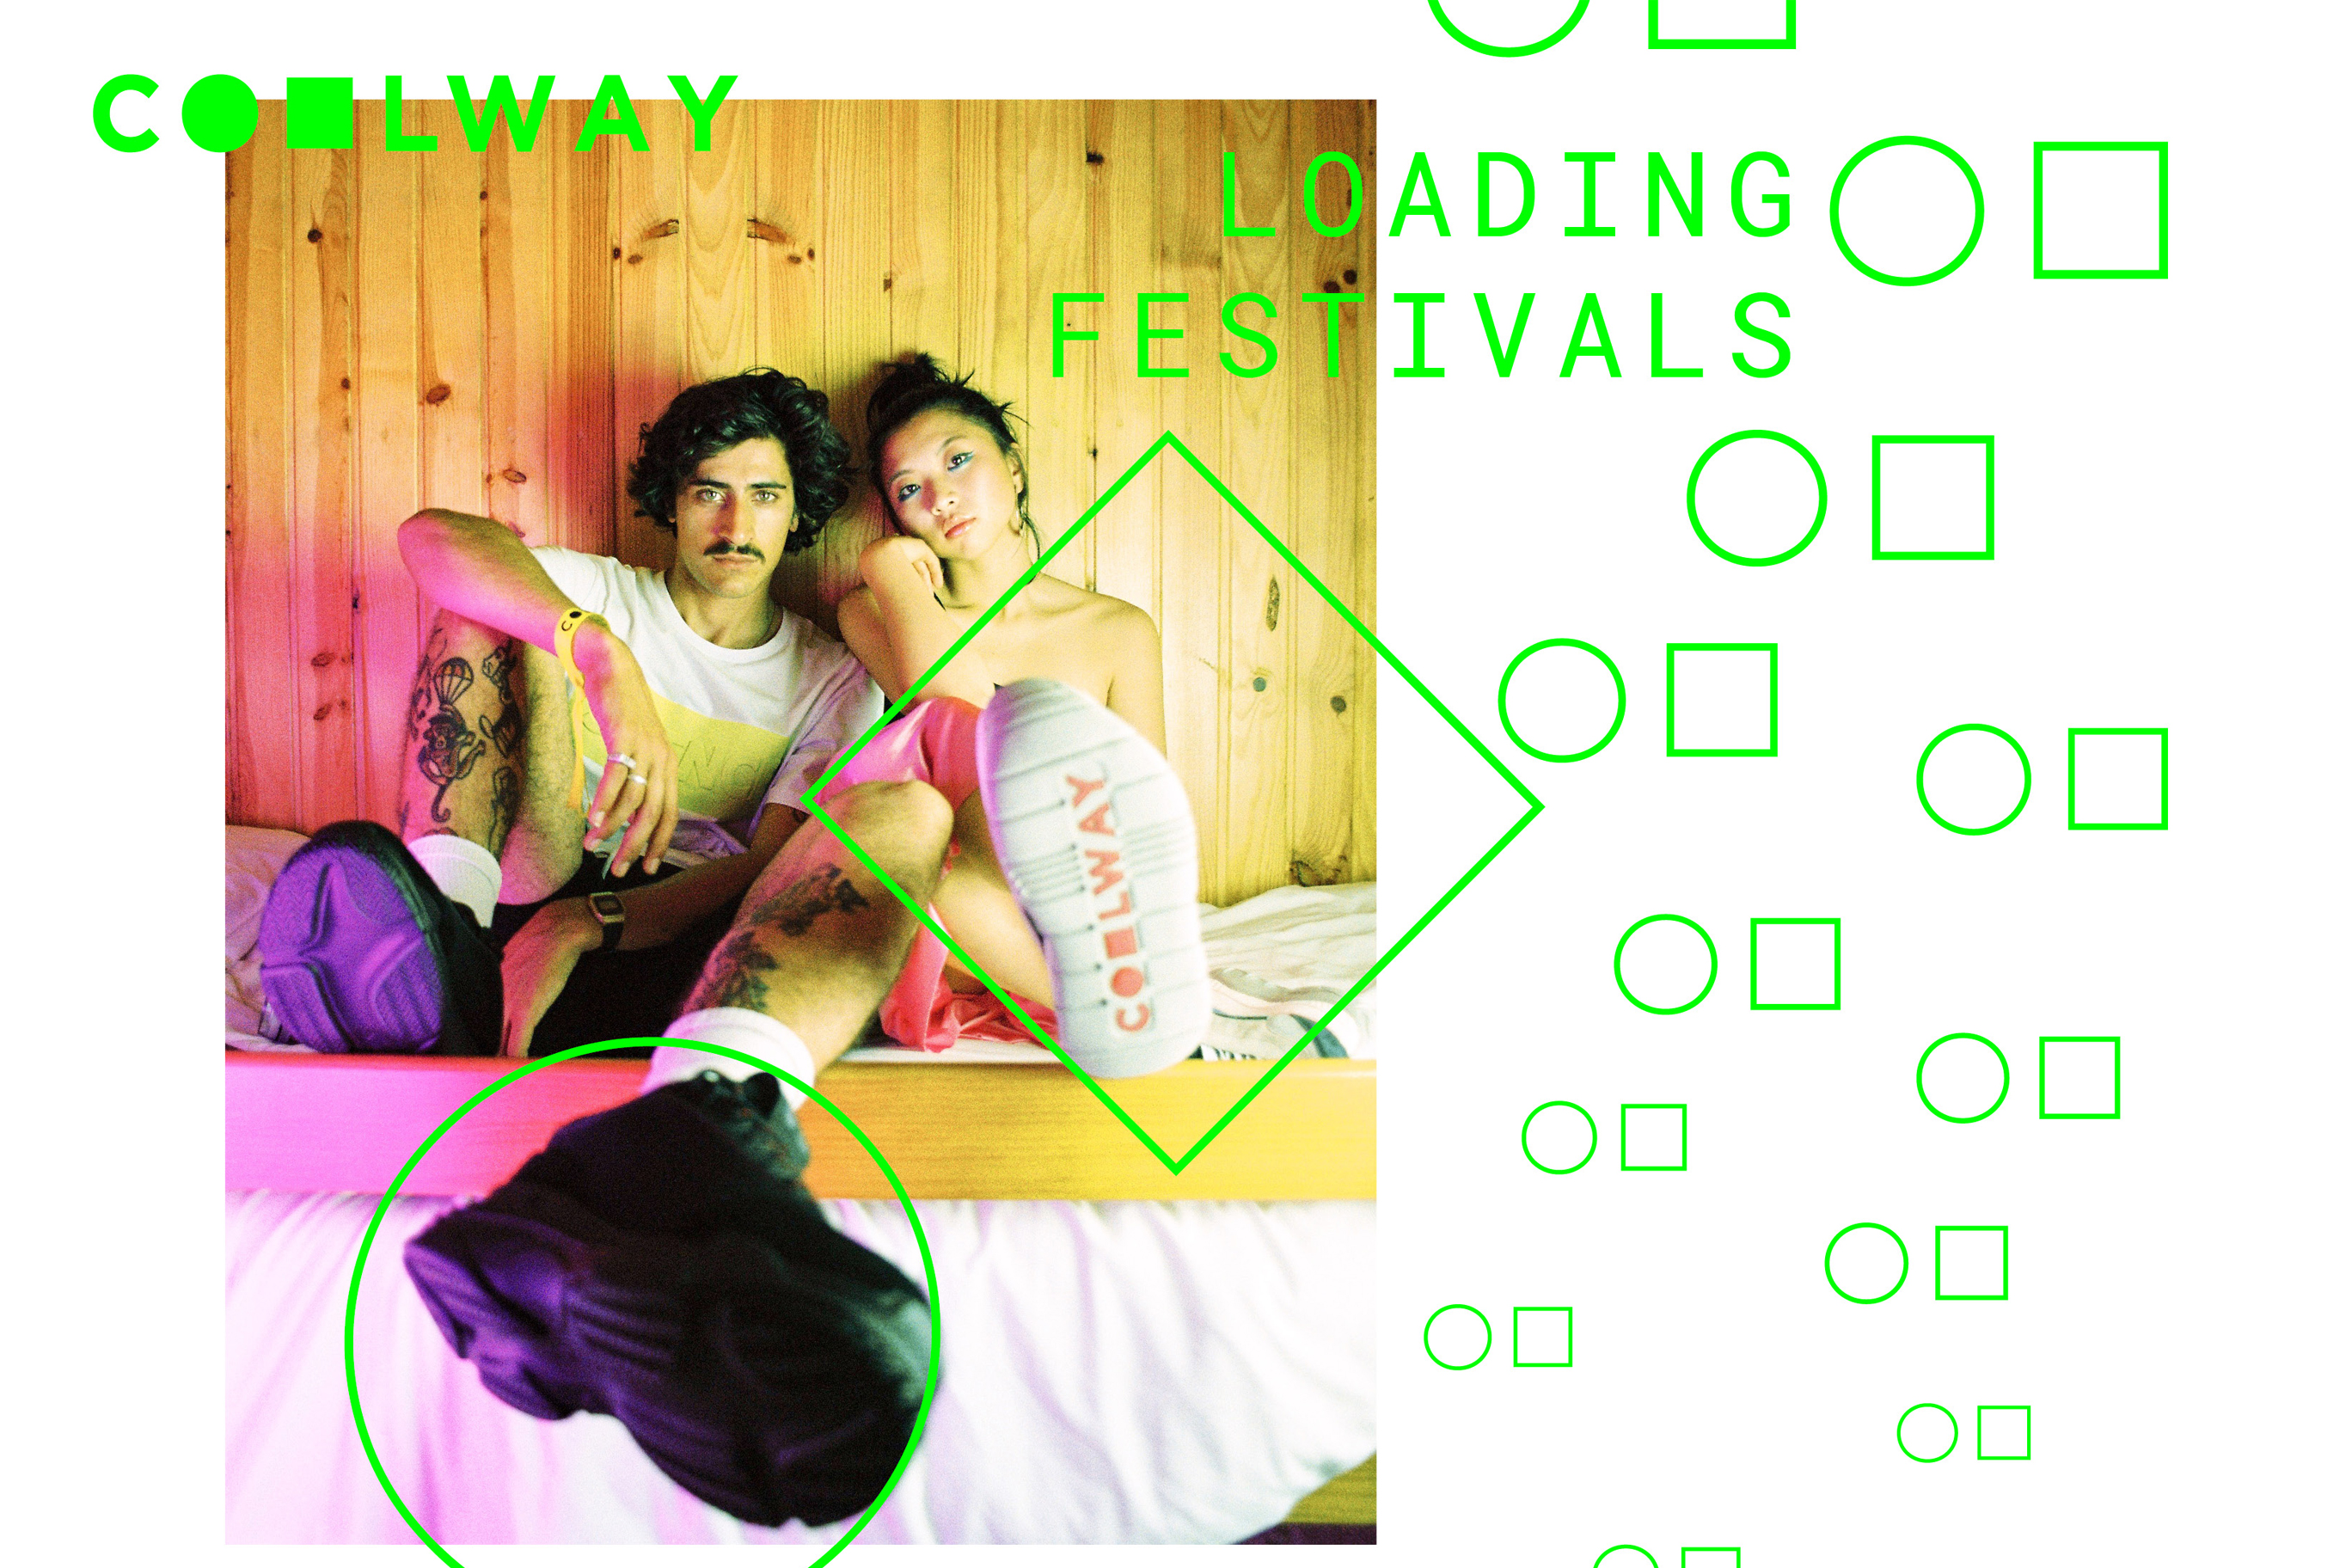 Coolmakers Festival